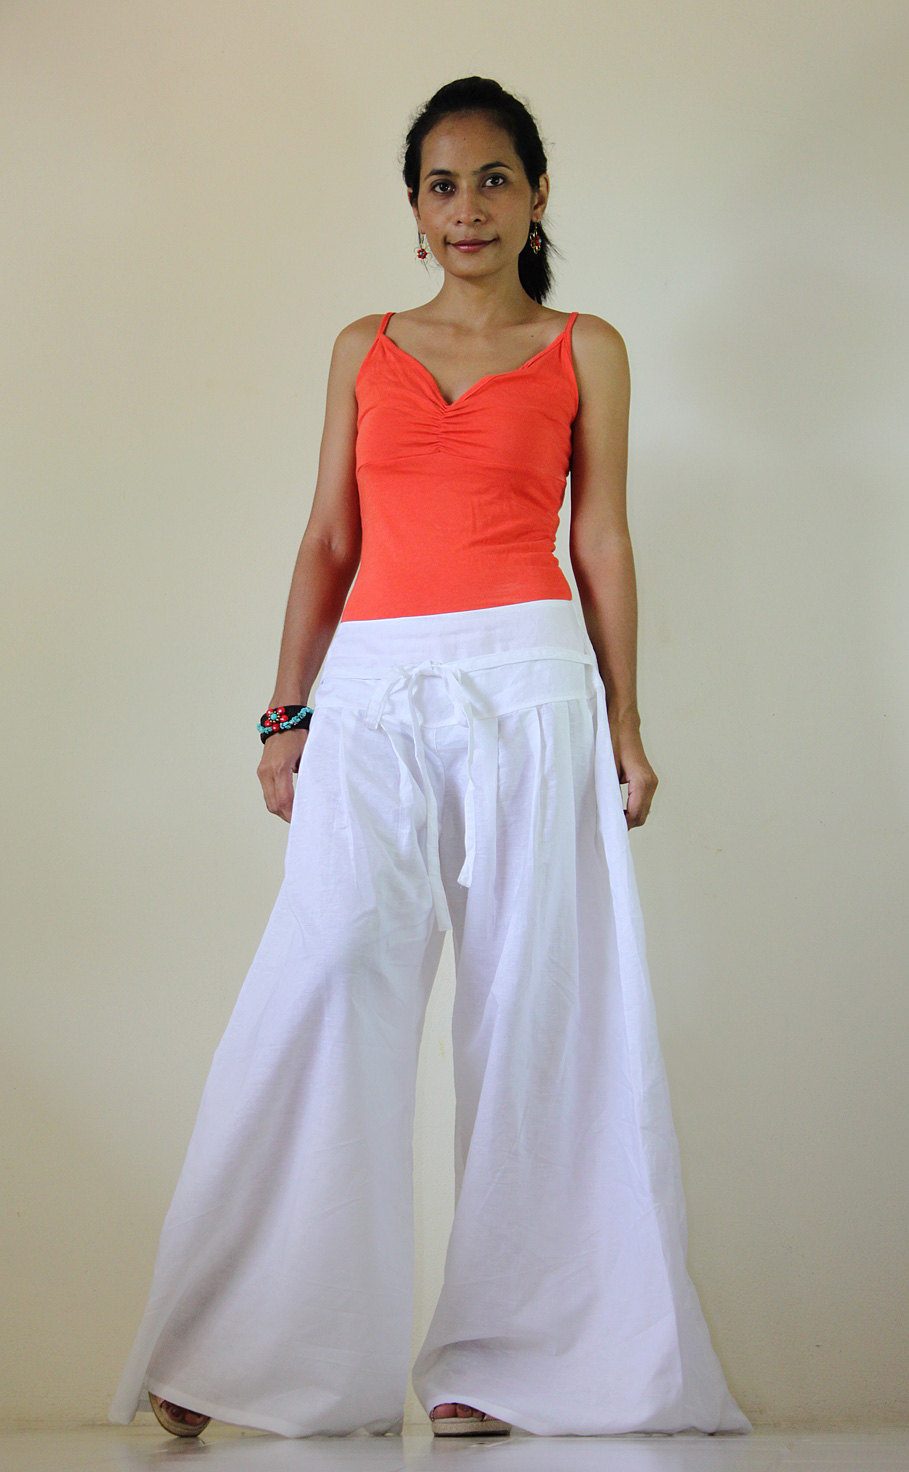 f52851337552 White Pants - Wide Leg Pants Cotton Linen Casual Wear : Soul of the Orient  Collection